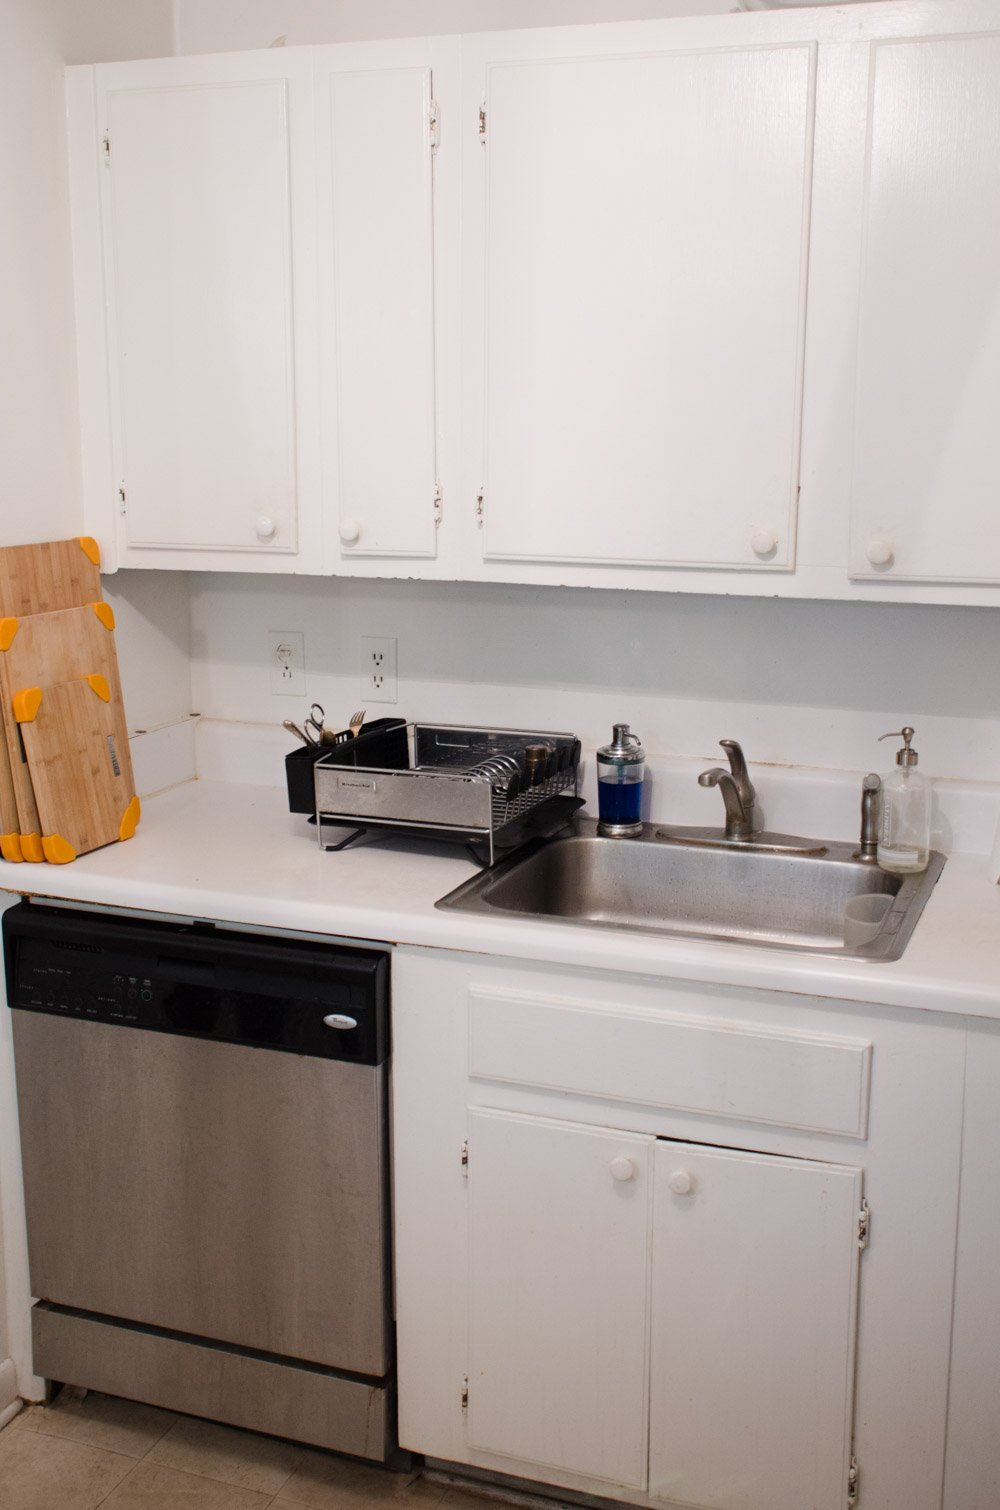 Inexpensive Rental Kitchen Makeover - Thou Swell